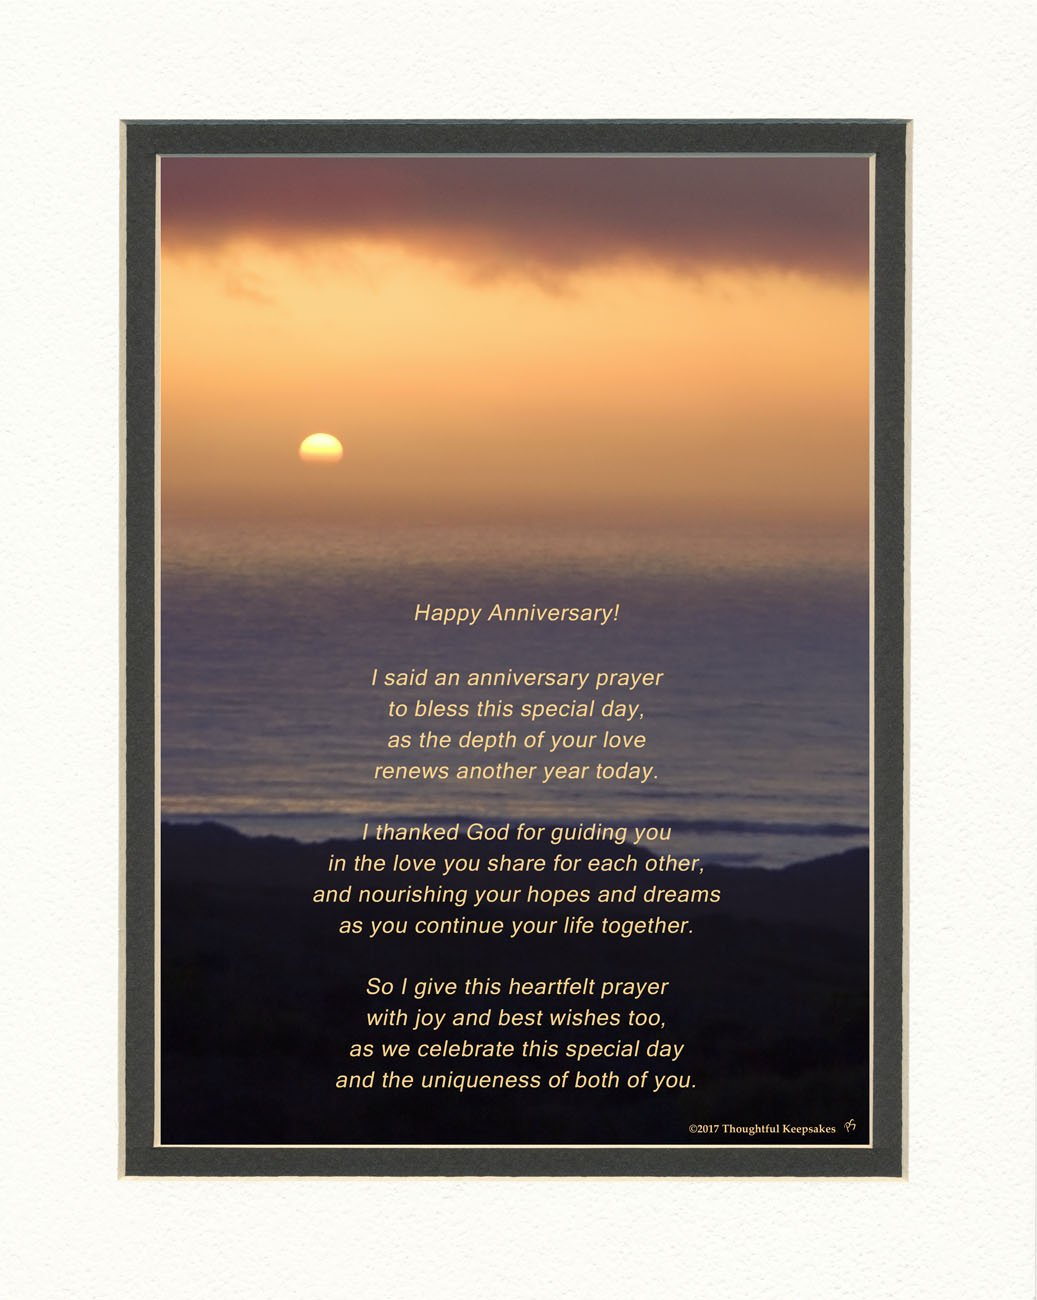 for Couple. Ocean Sunset Photo with Happy Anniversary Prayer Poem, 8x10 Double Matted for Anniversary for Couples for First to 10th, 25th, 50th or Any Anniversary.